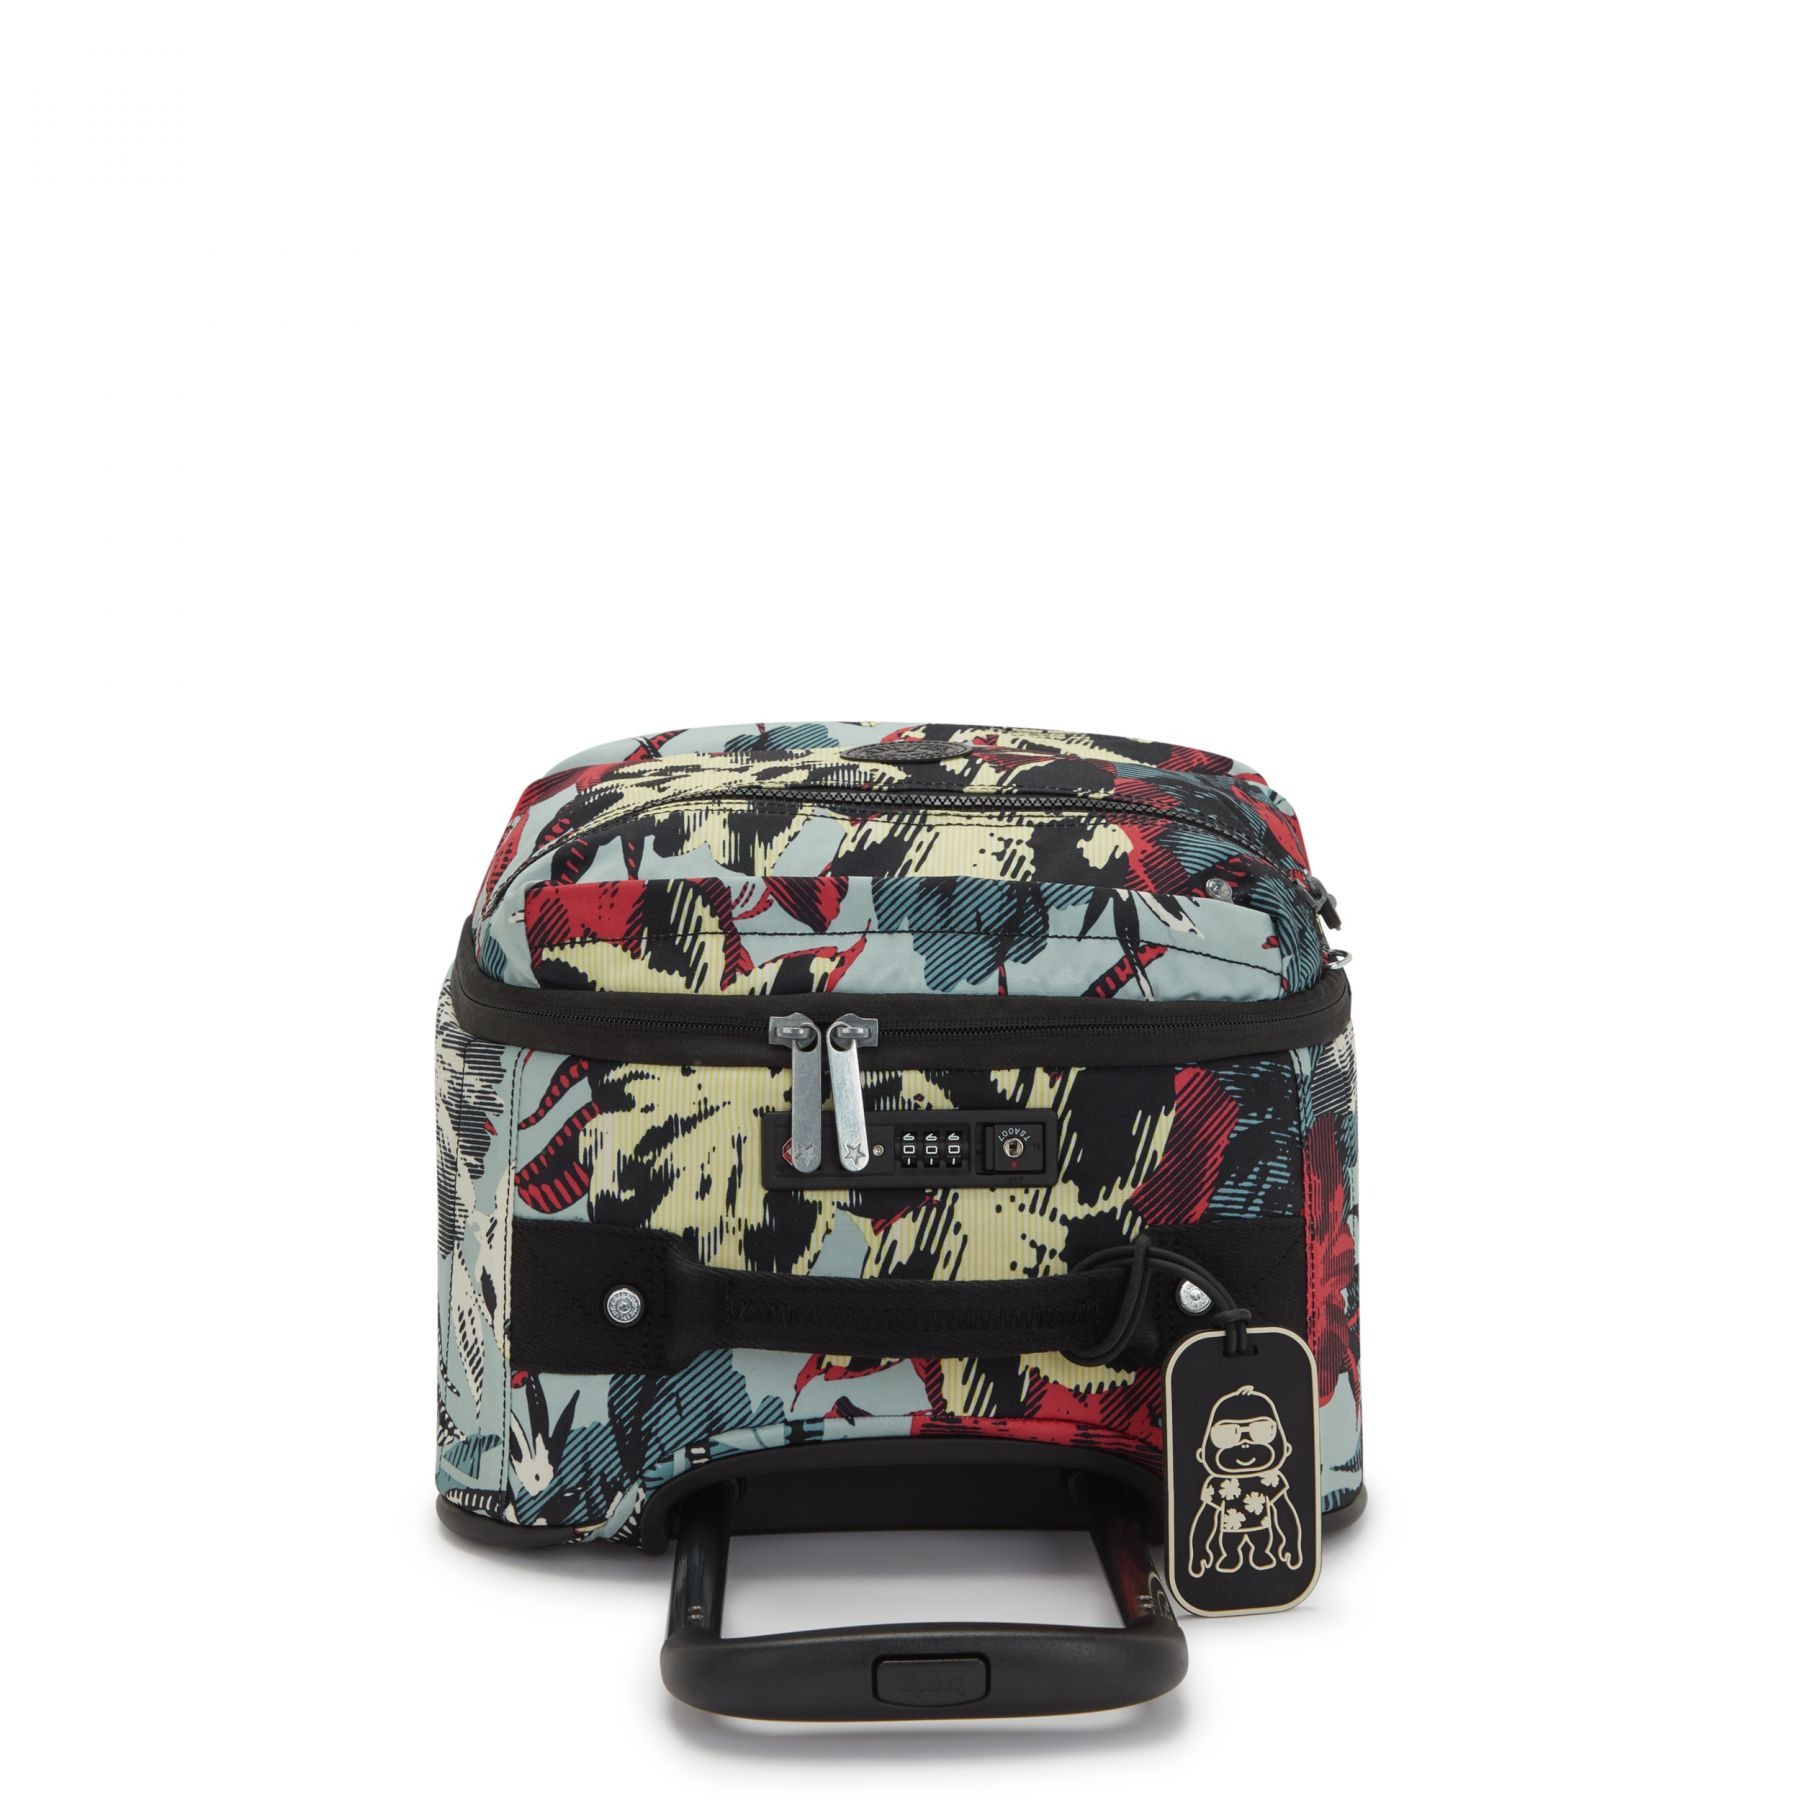 CITY SPINNER S LUGGAGE by Kipling - view 6